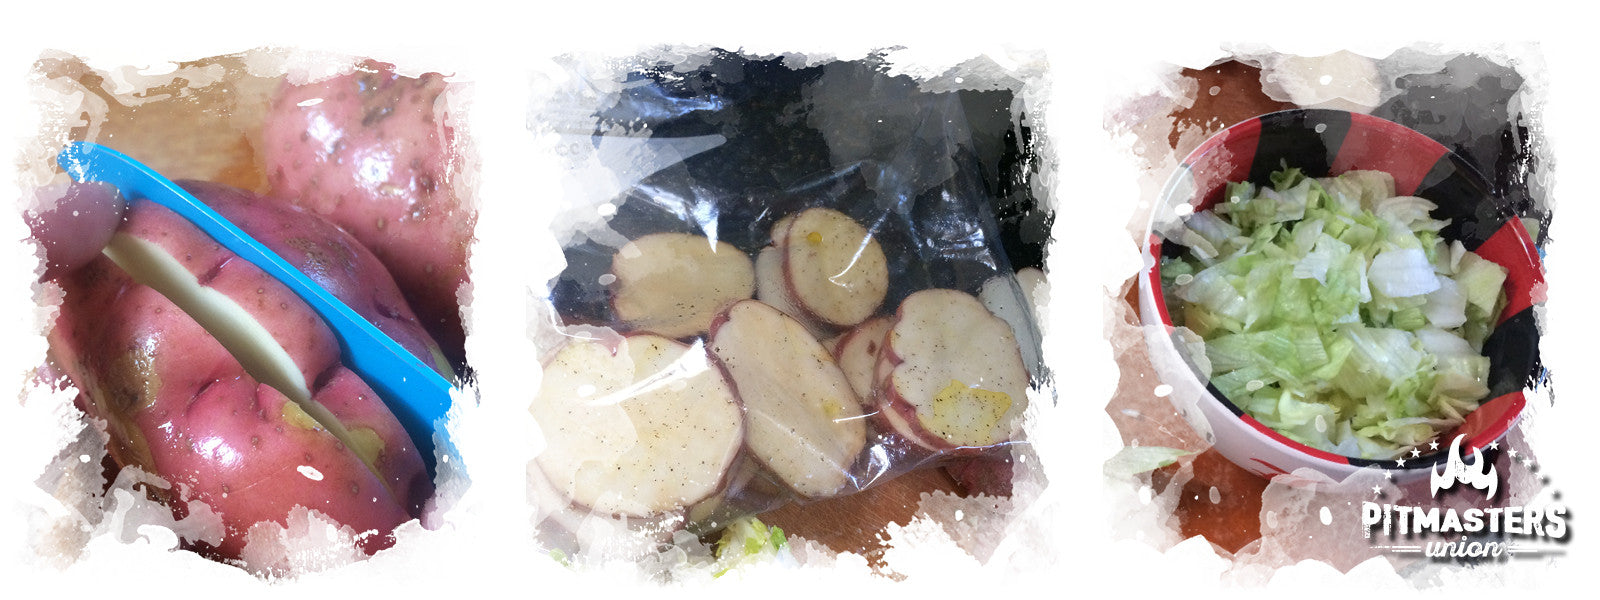 Preparation of the potatoes lettuce salad